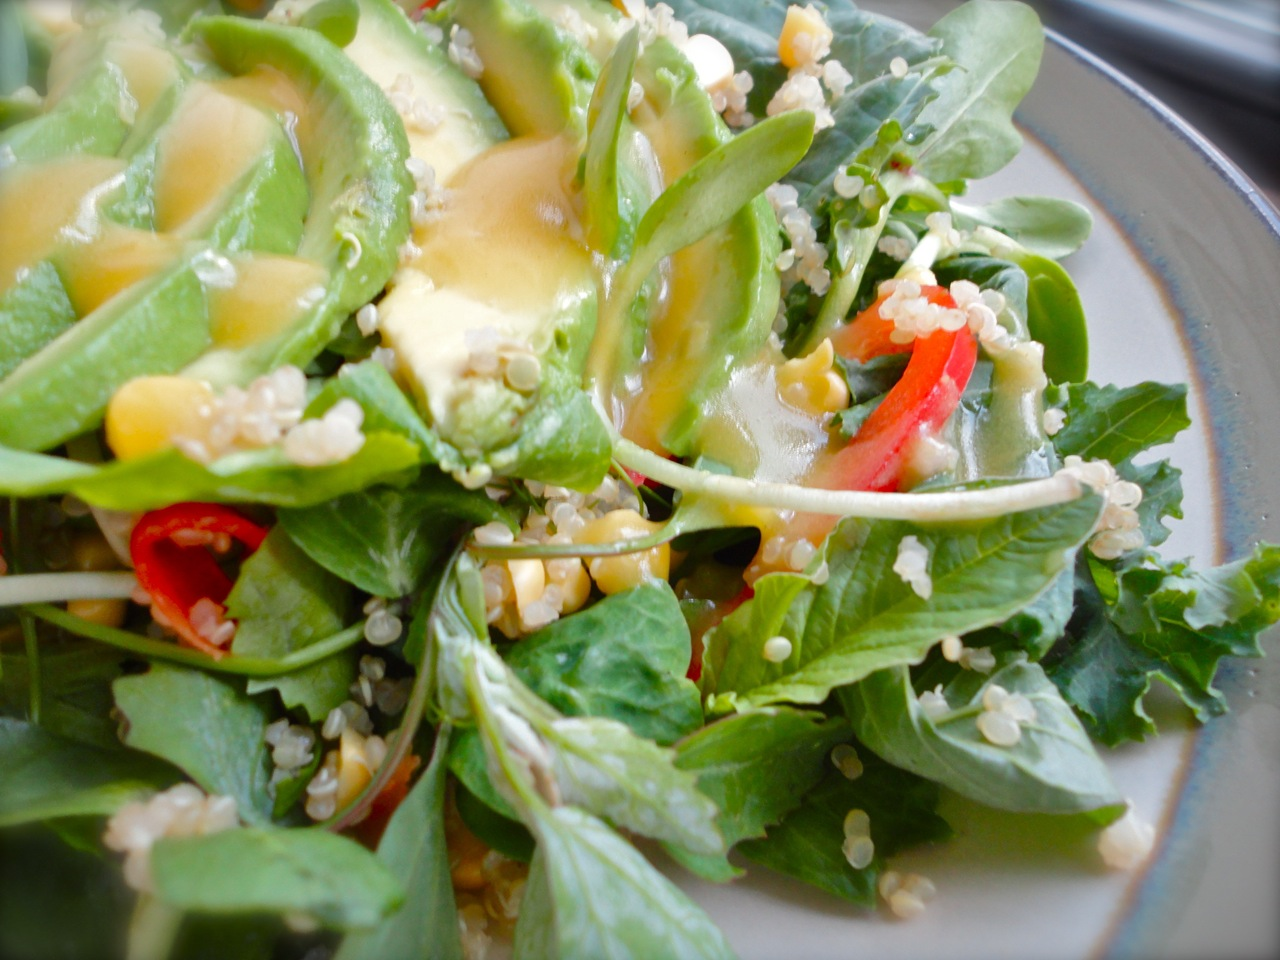 ... out this summer by heat wave after heat wave my craving for salads has